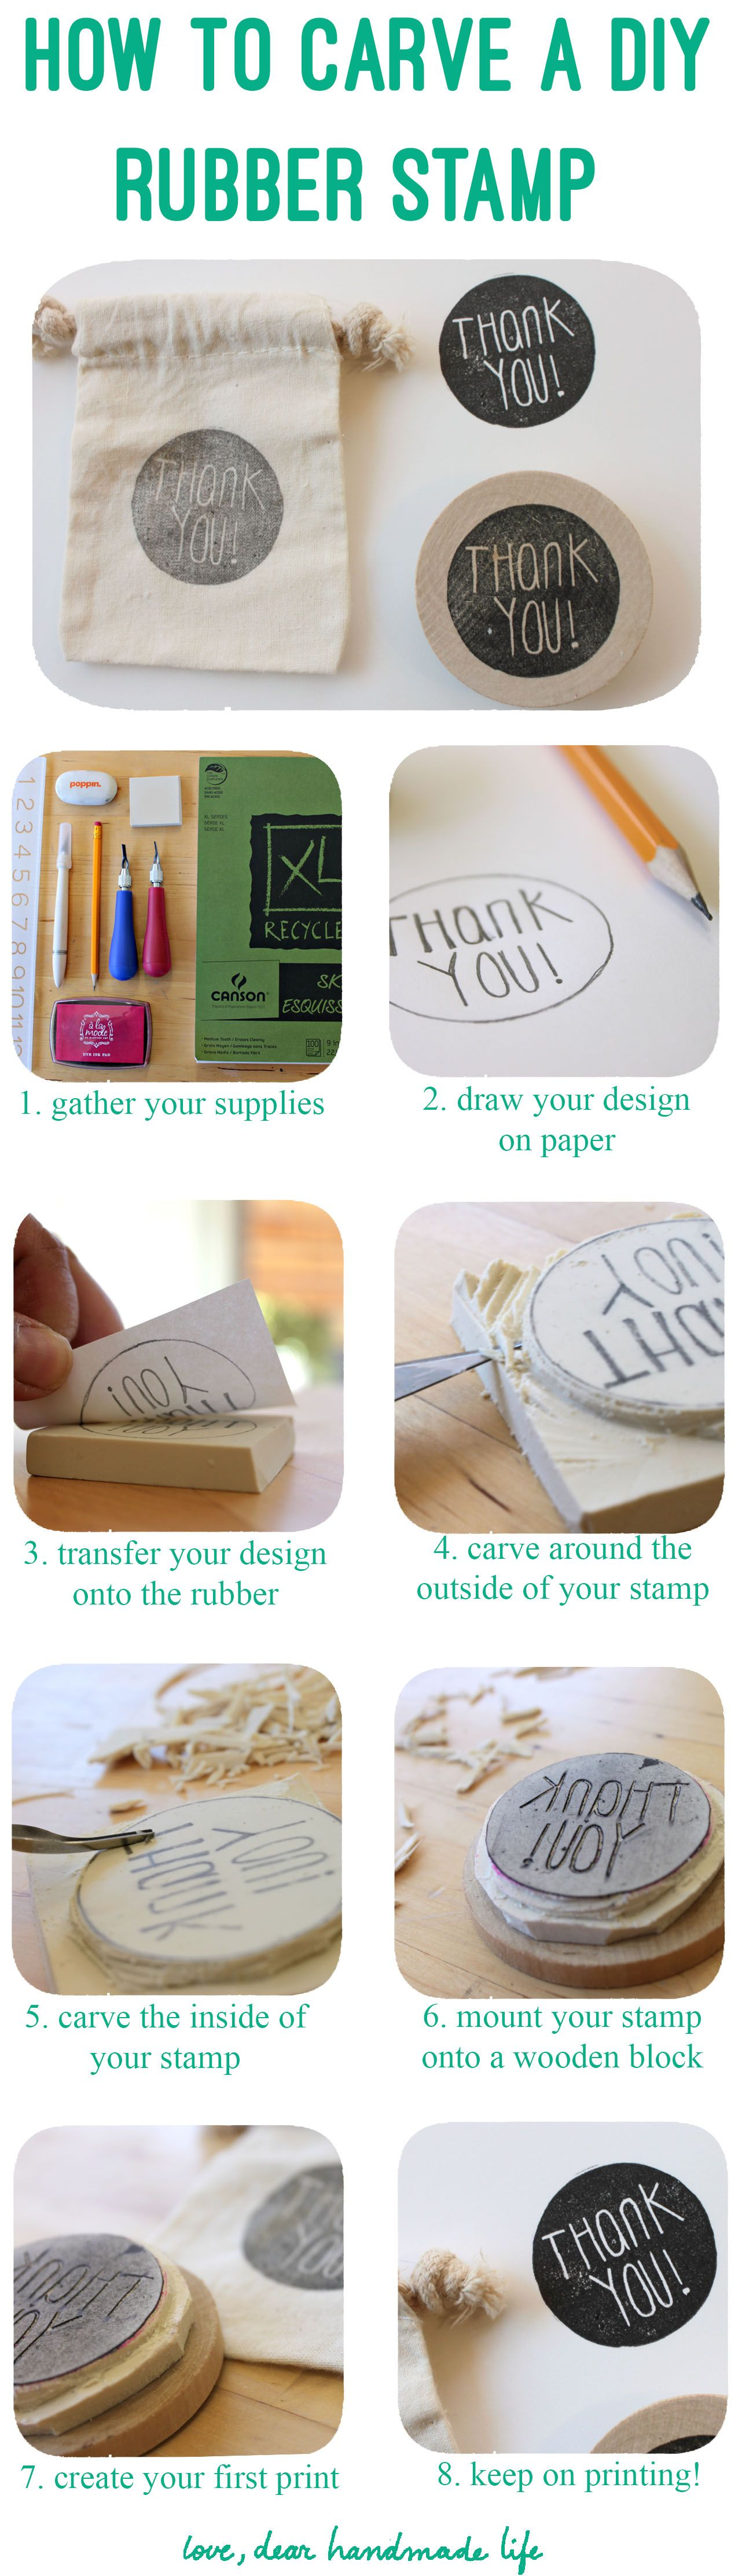 Rubber stamps for crafting - How To Carve Rubber Stamp Dear Handmade Life C Mo